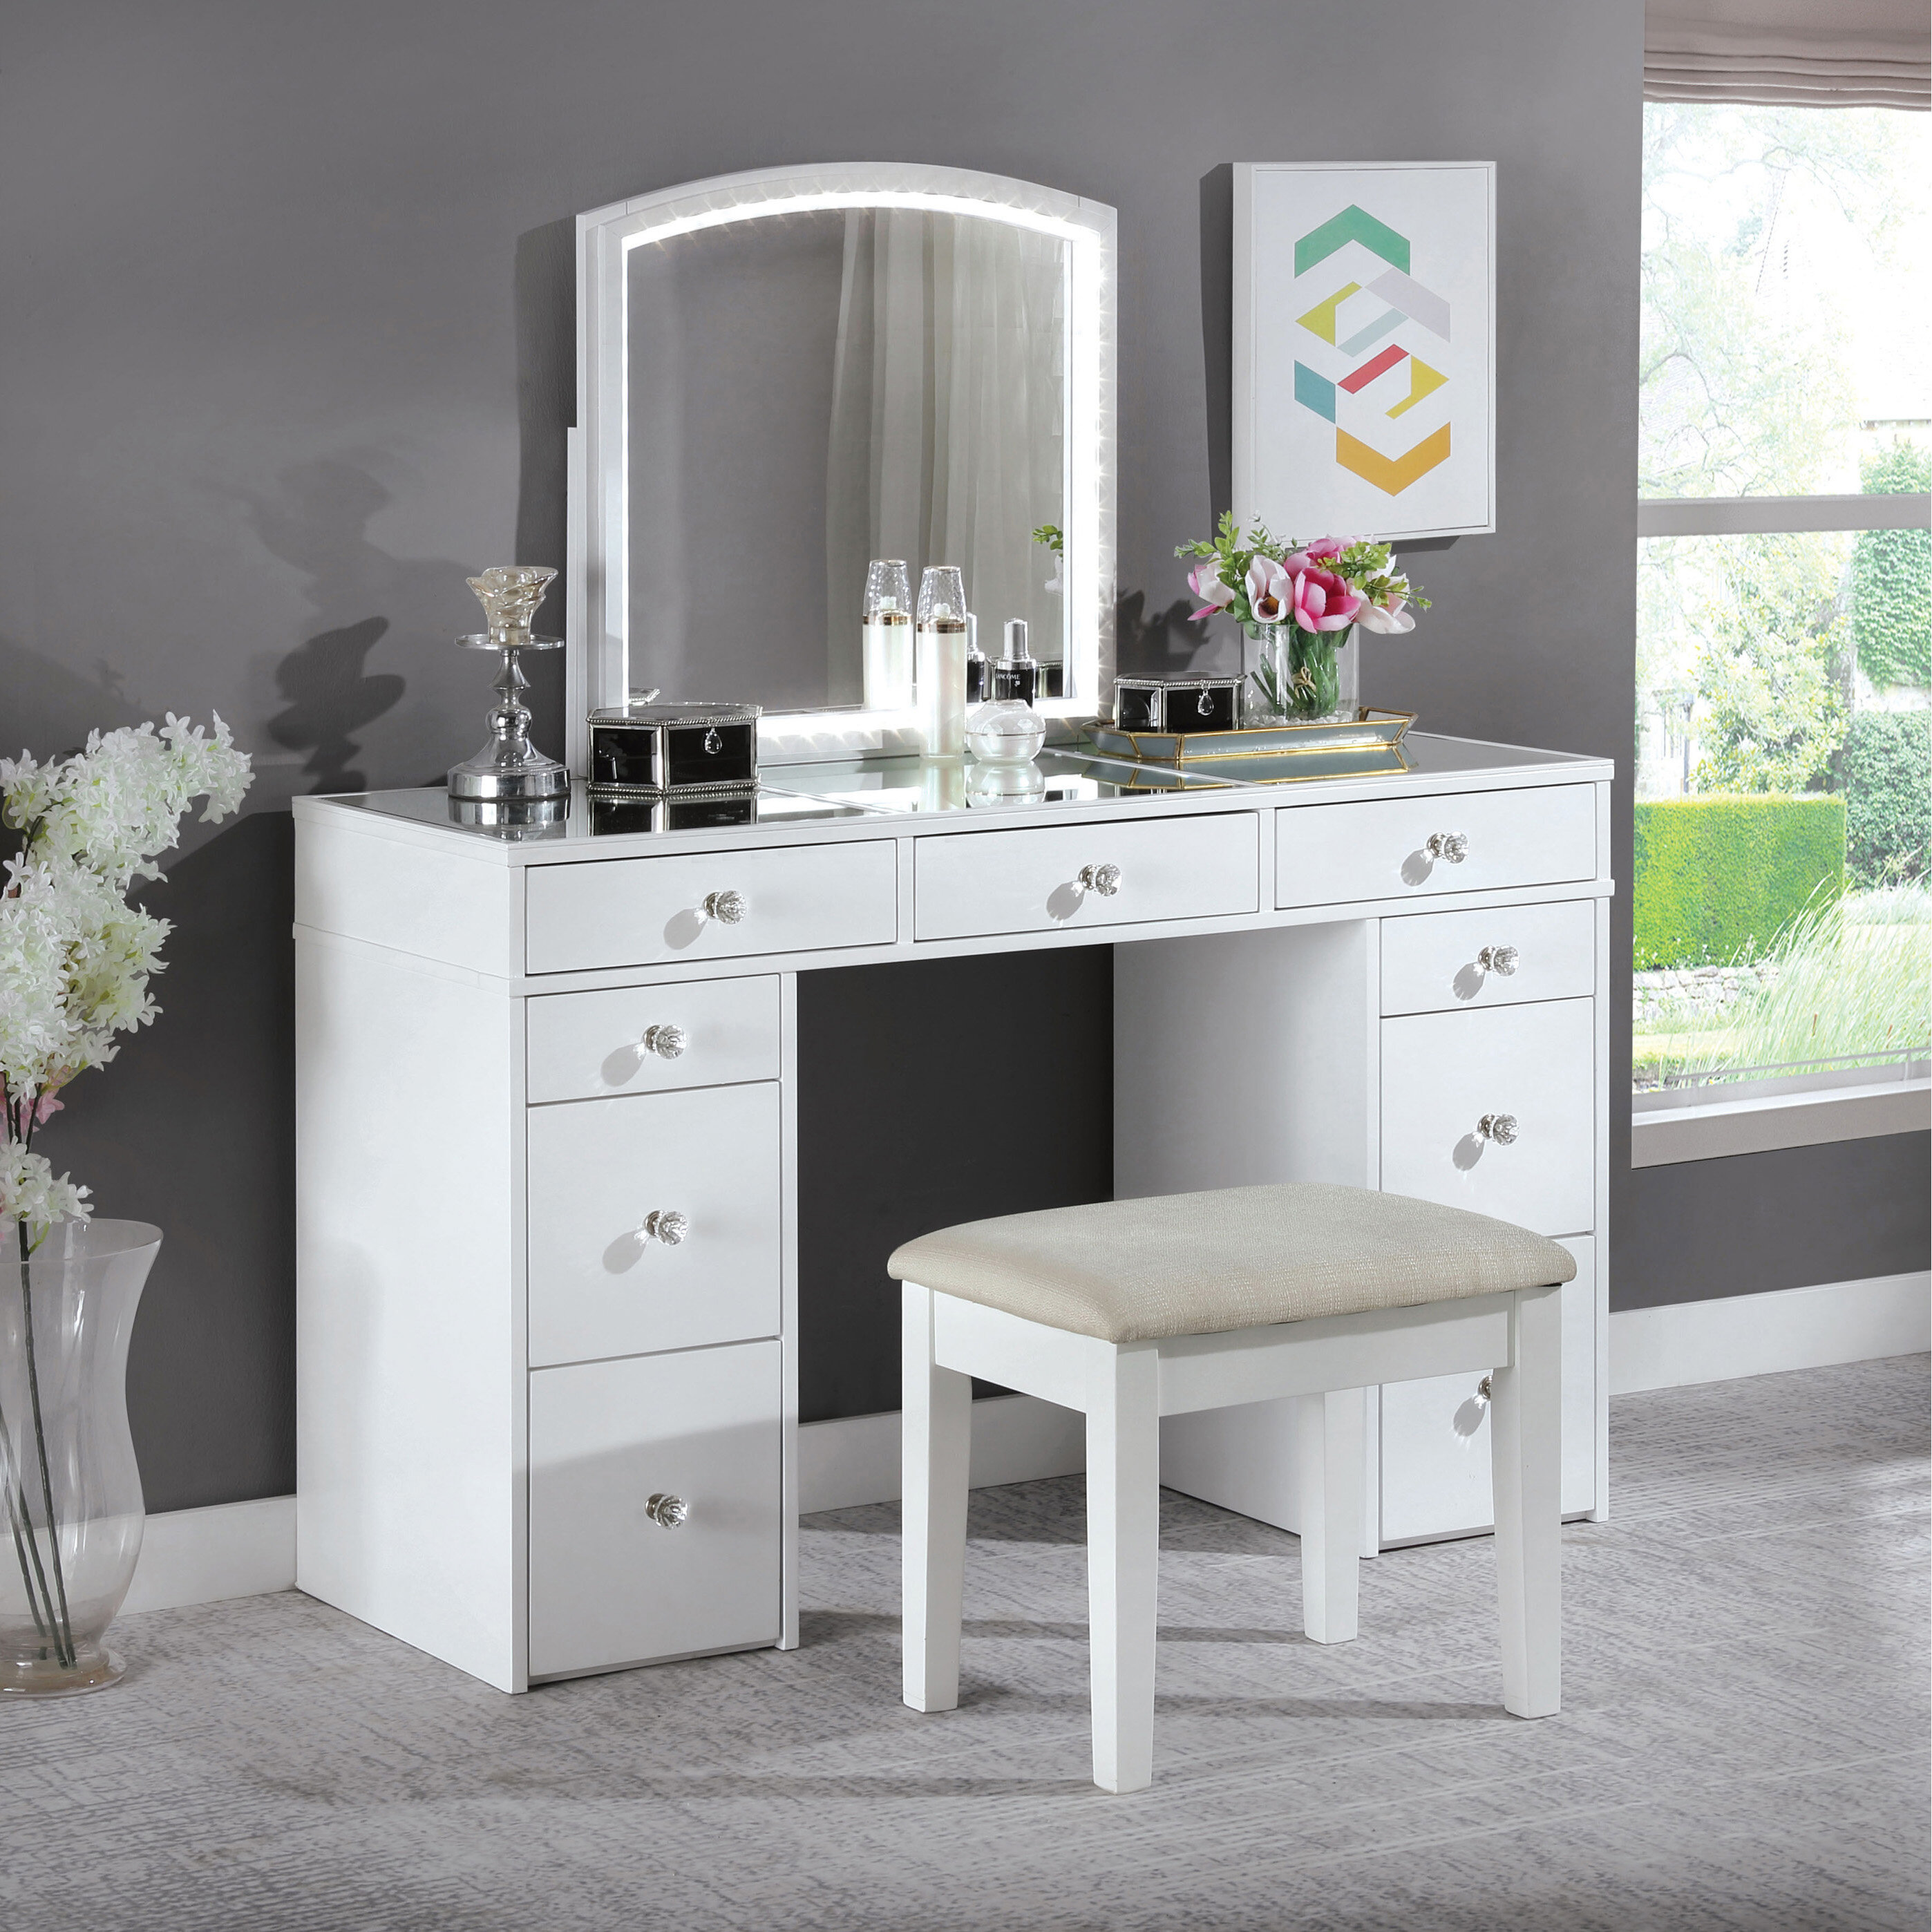 Hana Vanity Set with Stool and Mirror